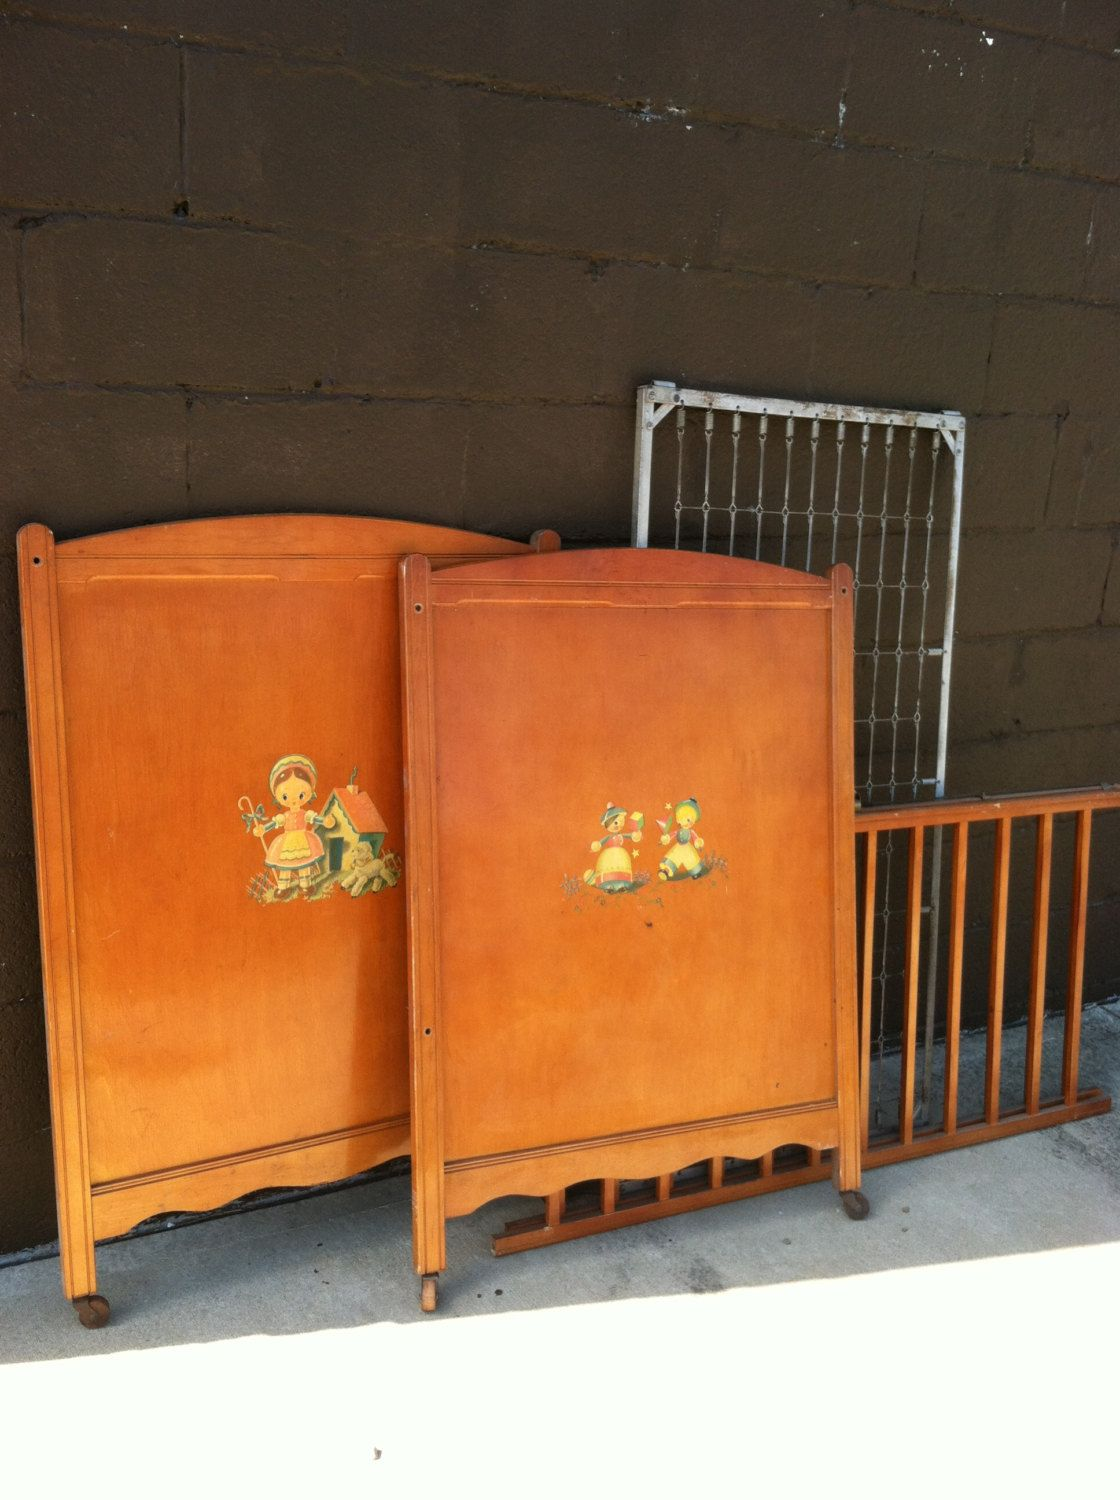 Crib for sale in davao city - Hospital Crib For Sale Rare Vintage Thomas Edison Crib Edison Little Folks Furniture Vintage Crib